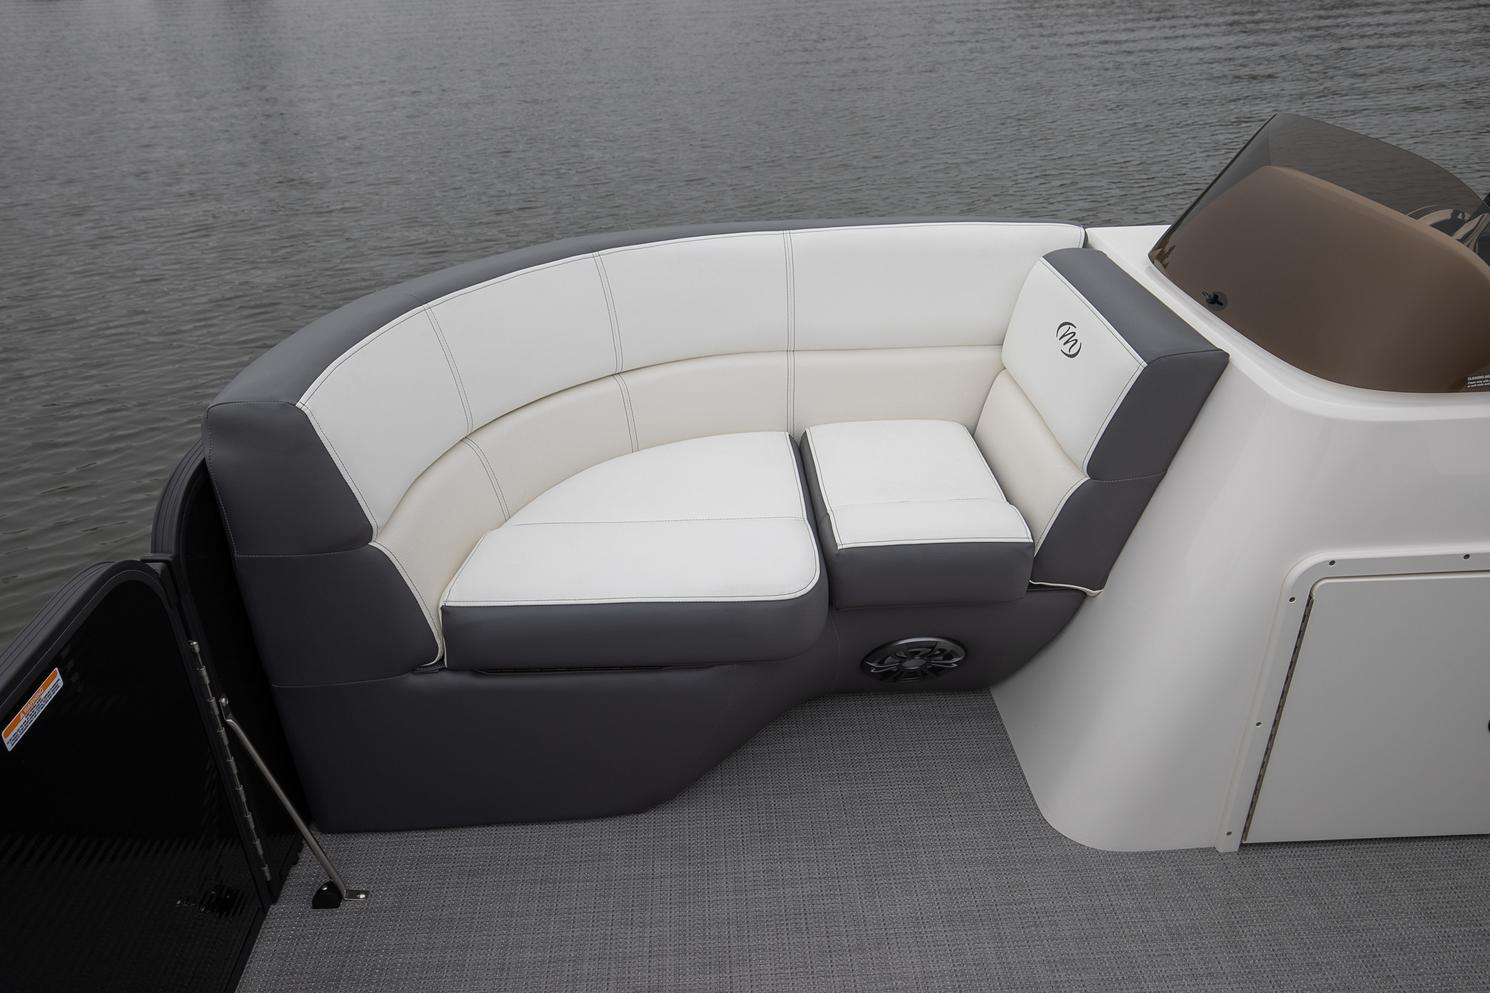 2021 Manitou Pontoon boat for sale, model of the boat is AURORA & Image # 3 of 8